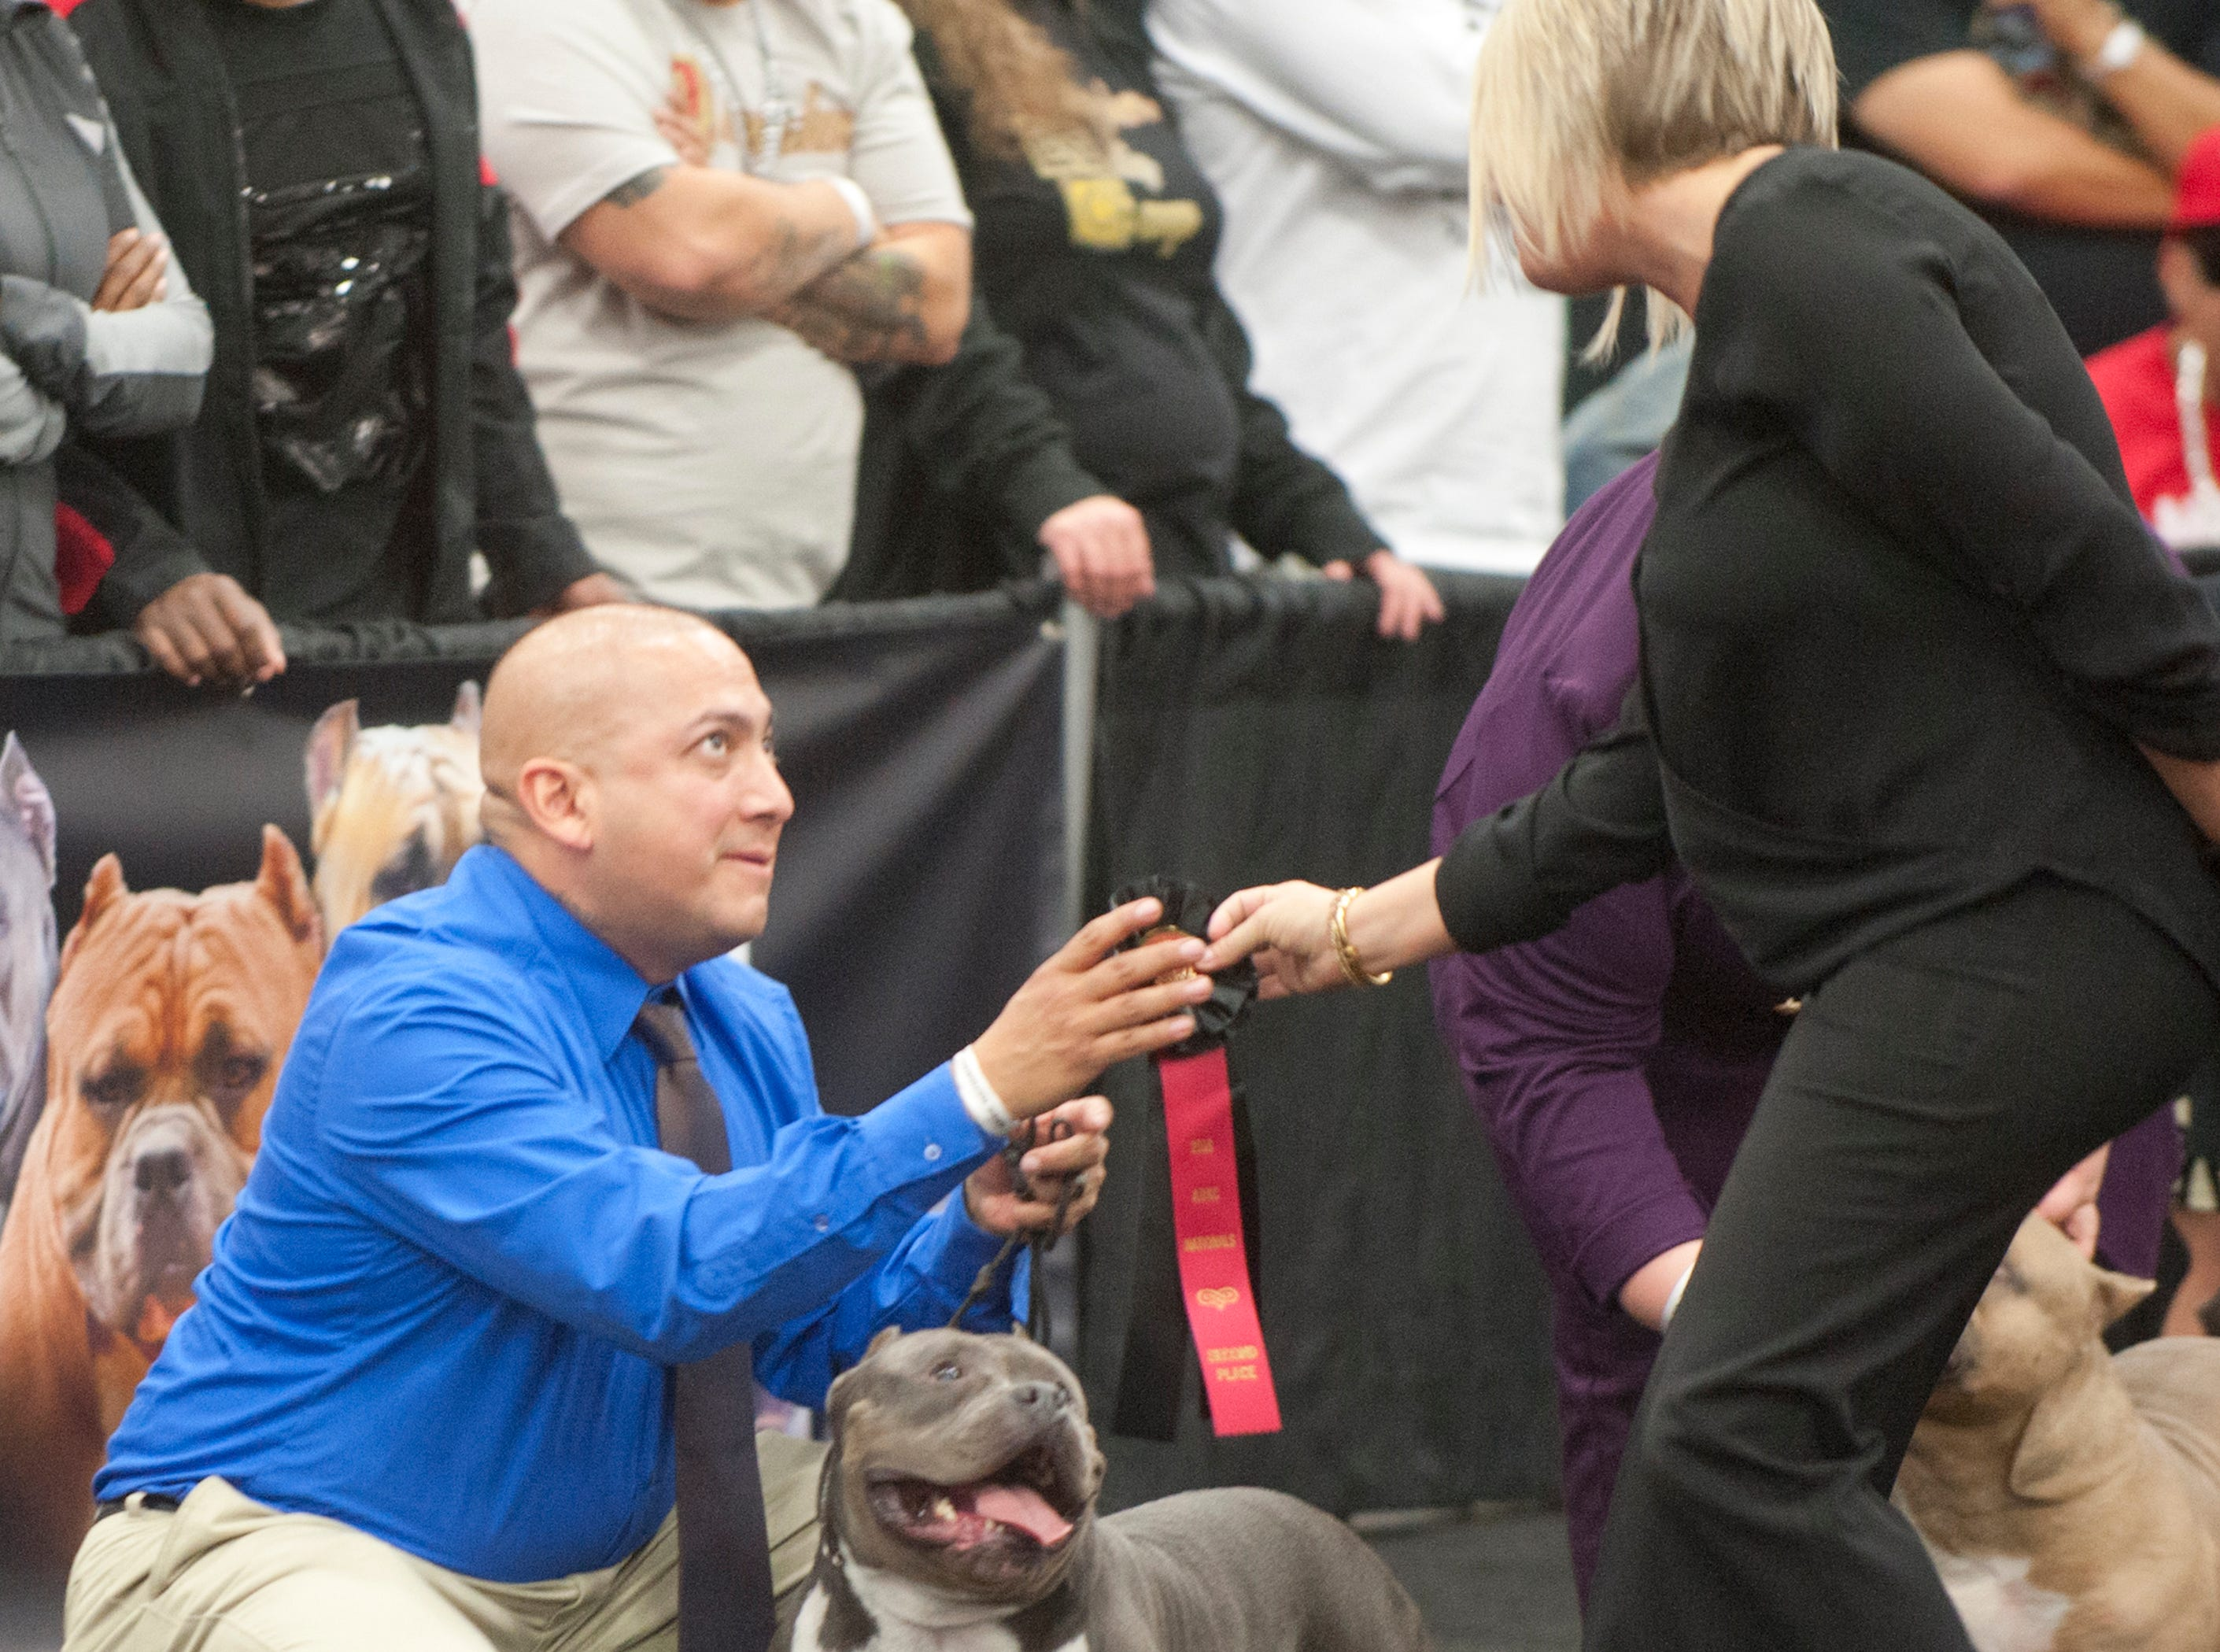 Michael Mata of Winner's Circle Kennels of Cheyenne, WY, hugs his dog Bullgari after placing 2nd in the pocket bull (ages 1-2) category during the 2018 American Bully Kennel Club's 12th annual confirmation event at the Kentucky Convention Center in Louisville. Handing him the ribbon is Judge Rachel Ogletree of Atlanta.November 10, 2018